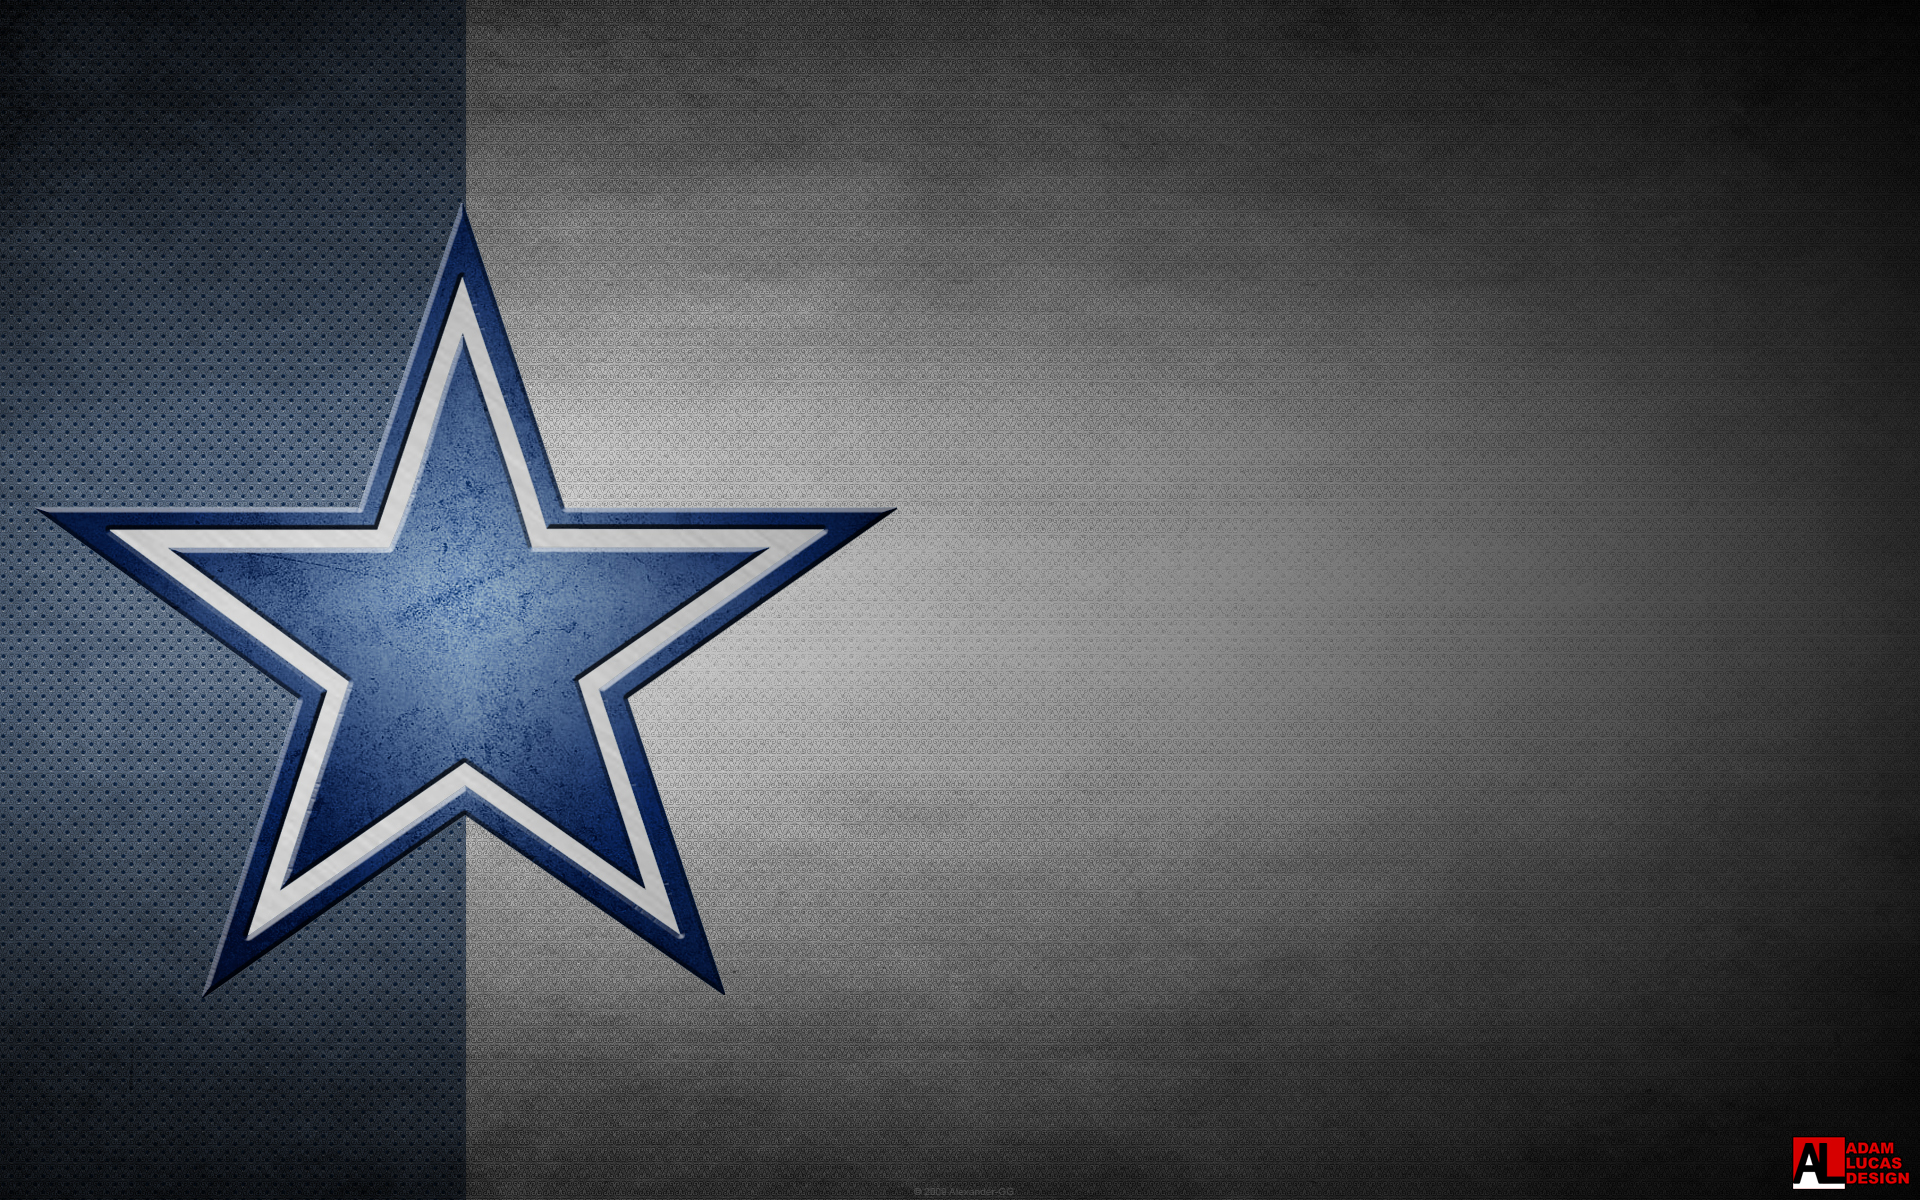 Dallas Cowboys Wallpaper For Desktop 1920x1200